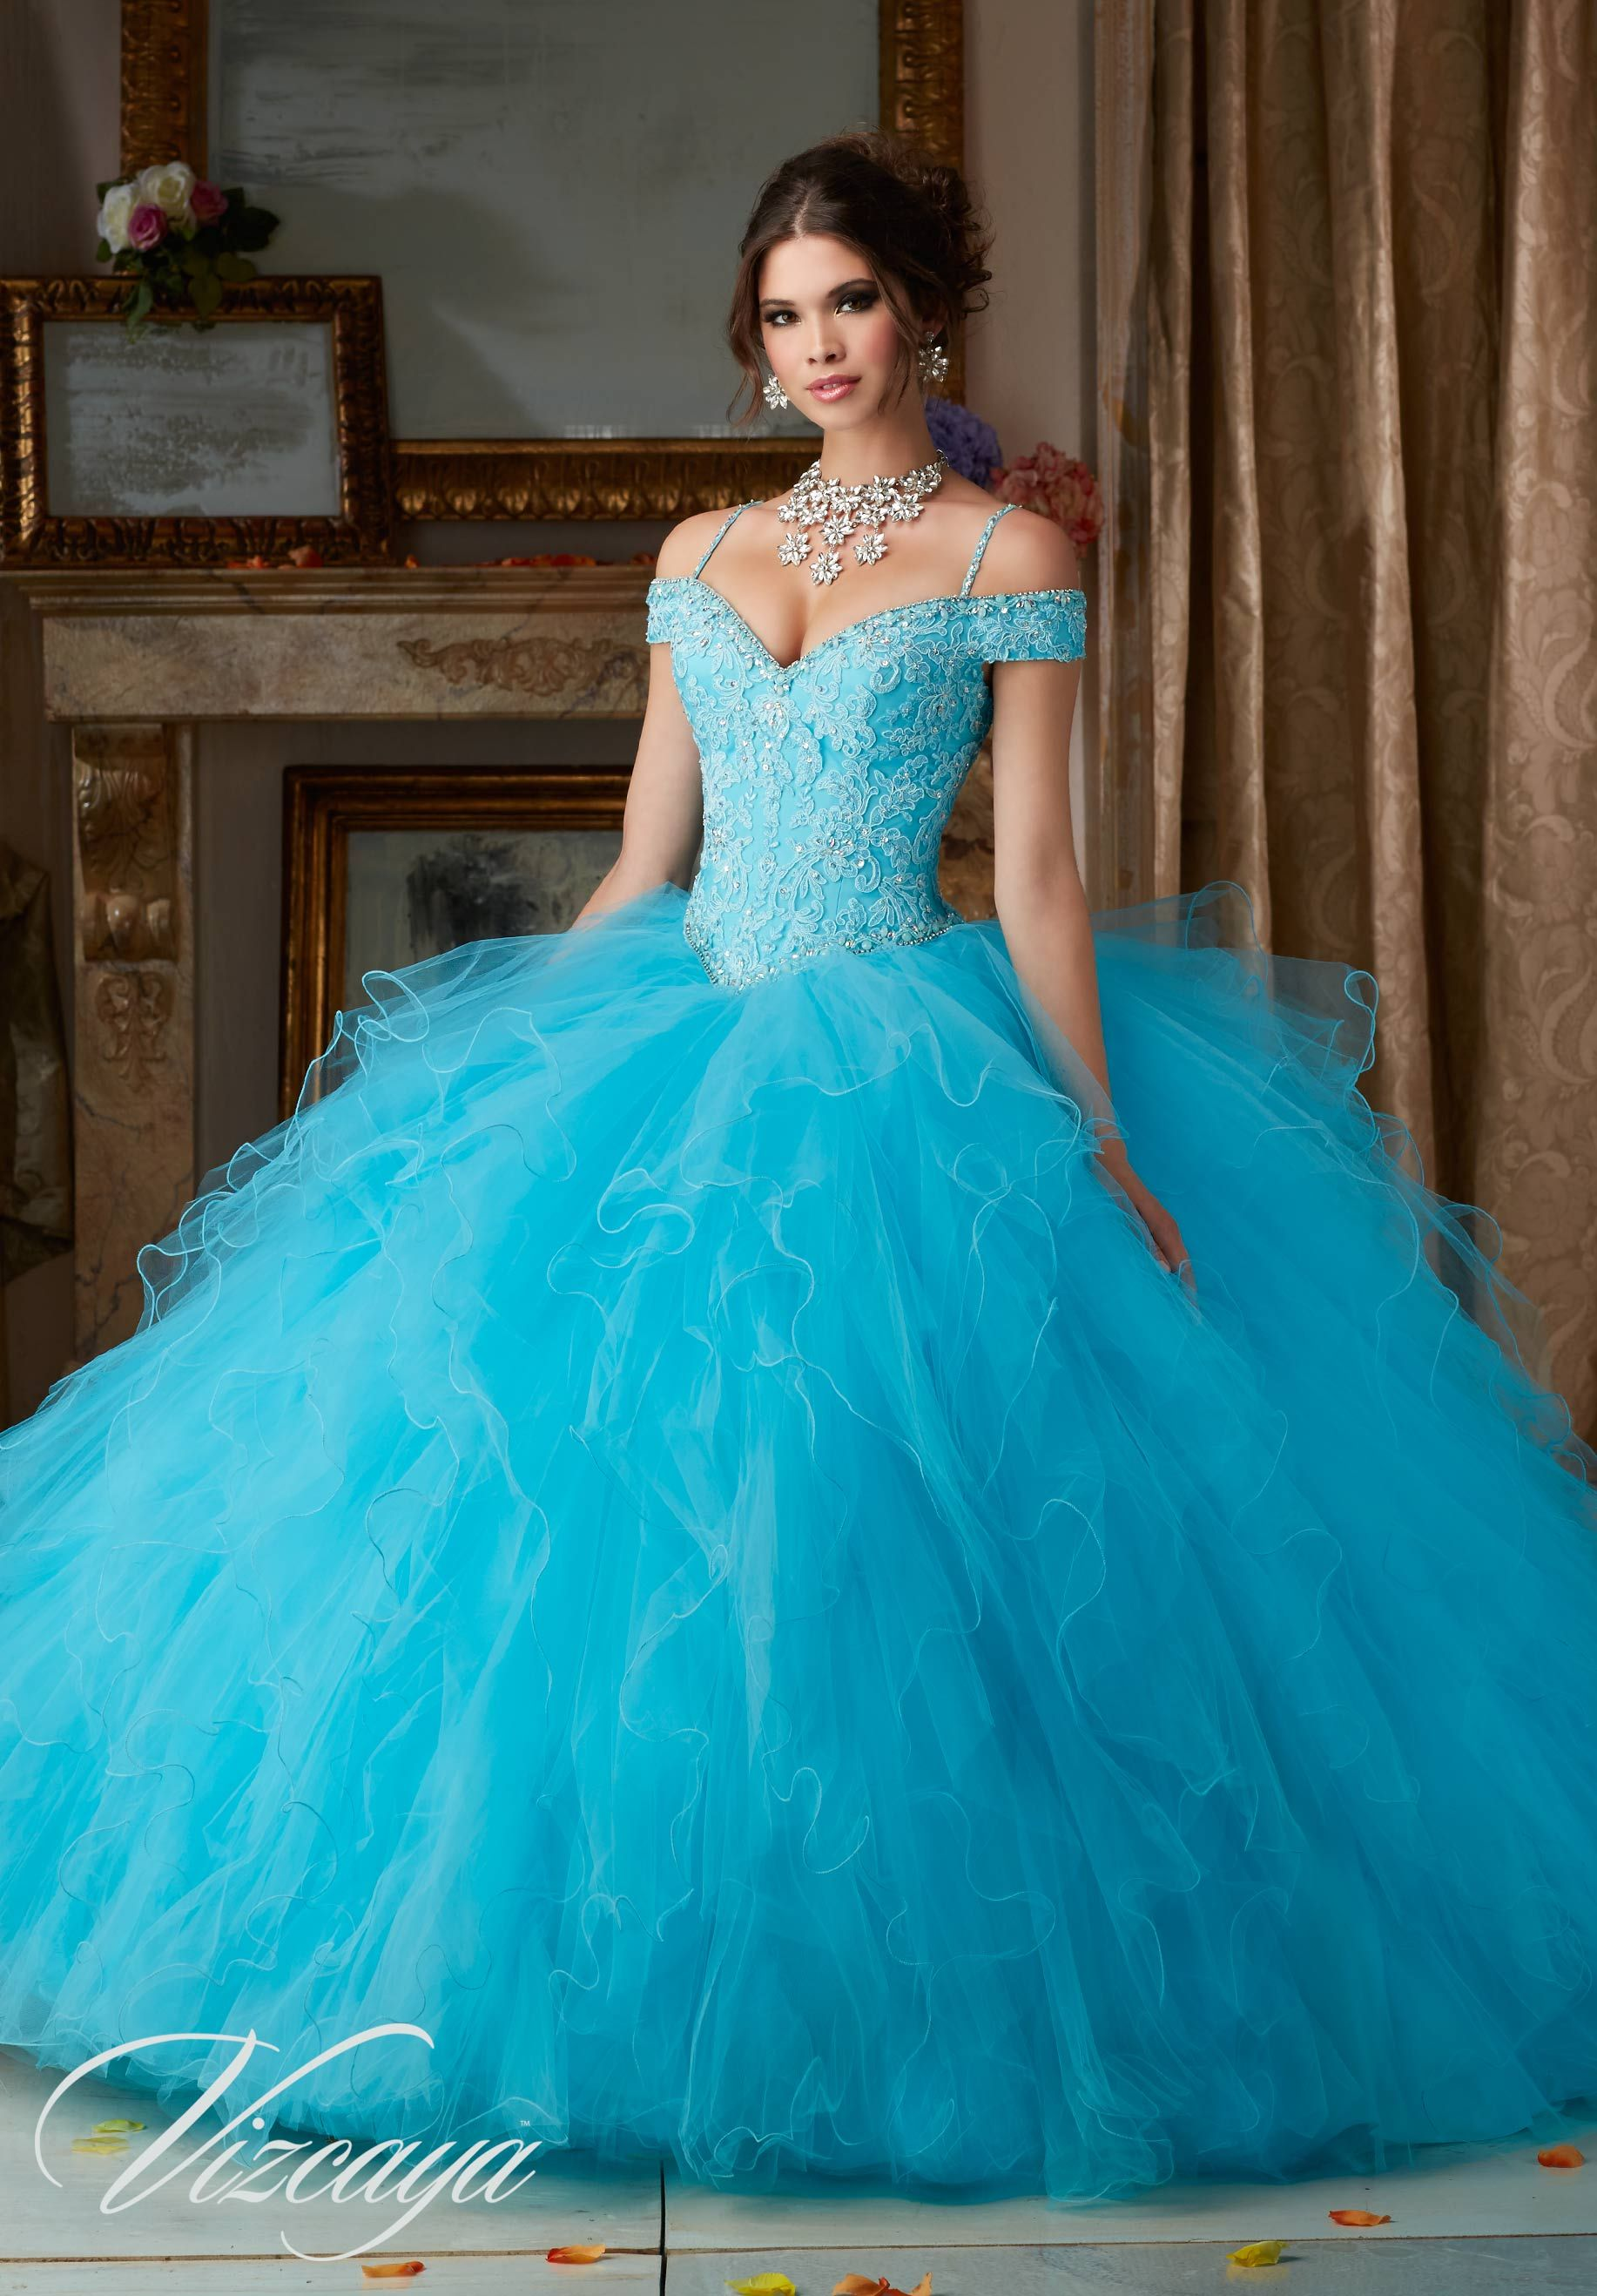 20 New Off-the-shoulder Quinceanera Dresses | Dresses., Beaded ...